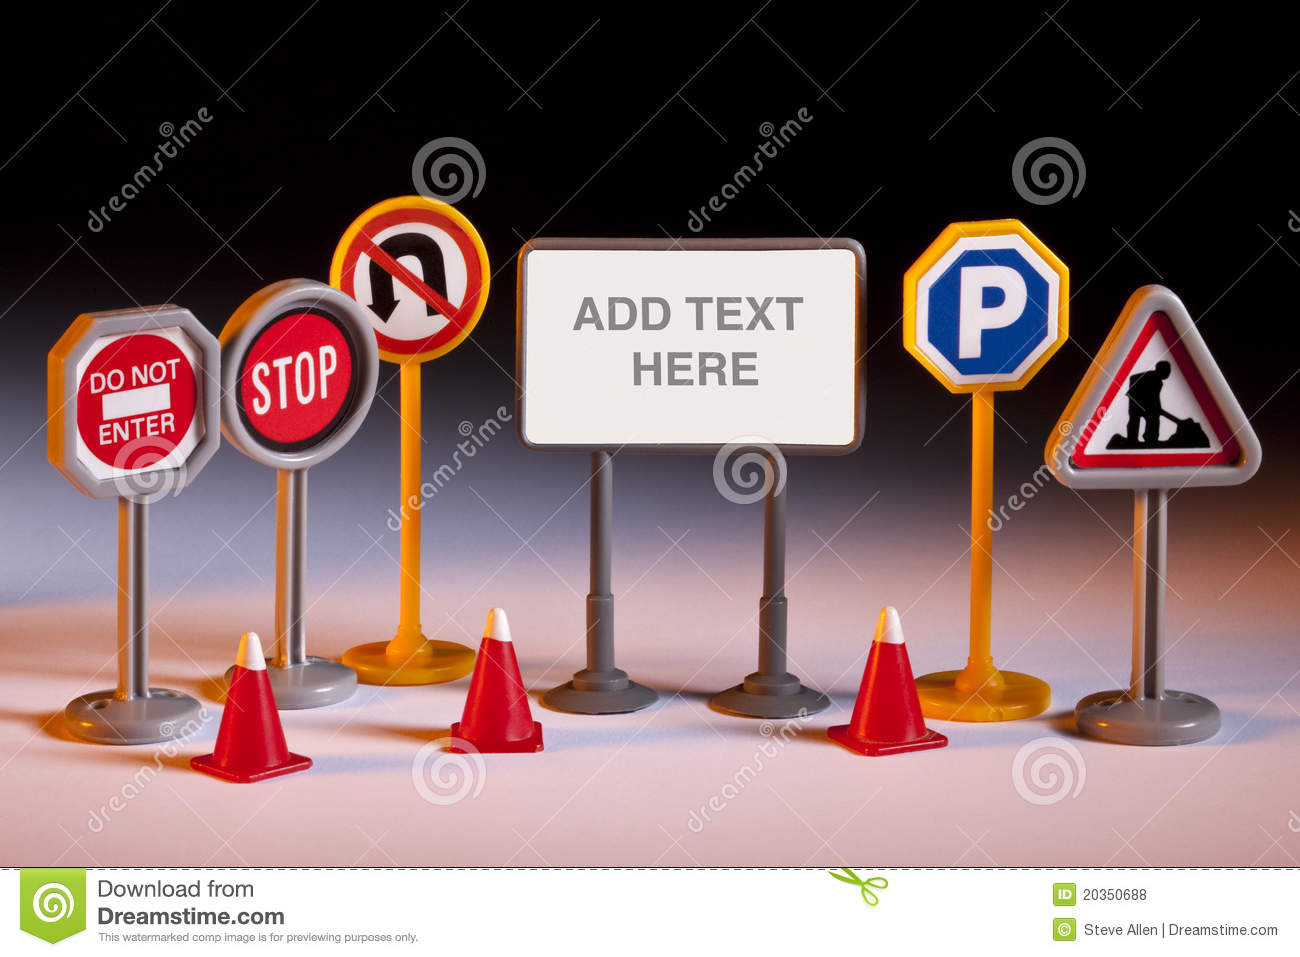 Road Repairs  Toy Road Signs  Add Text Royalty Free. West Side Signs Of Stroke. Mental Breakdown Signs. Biology Lab Signs. Cross Street Signs Of Stroke. Satanic Signs Of Stroke. Engagement Party Signs Of Stroke. Acid Reflux Signs. Migraine Signs